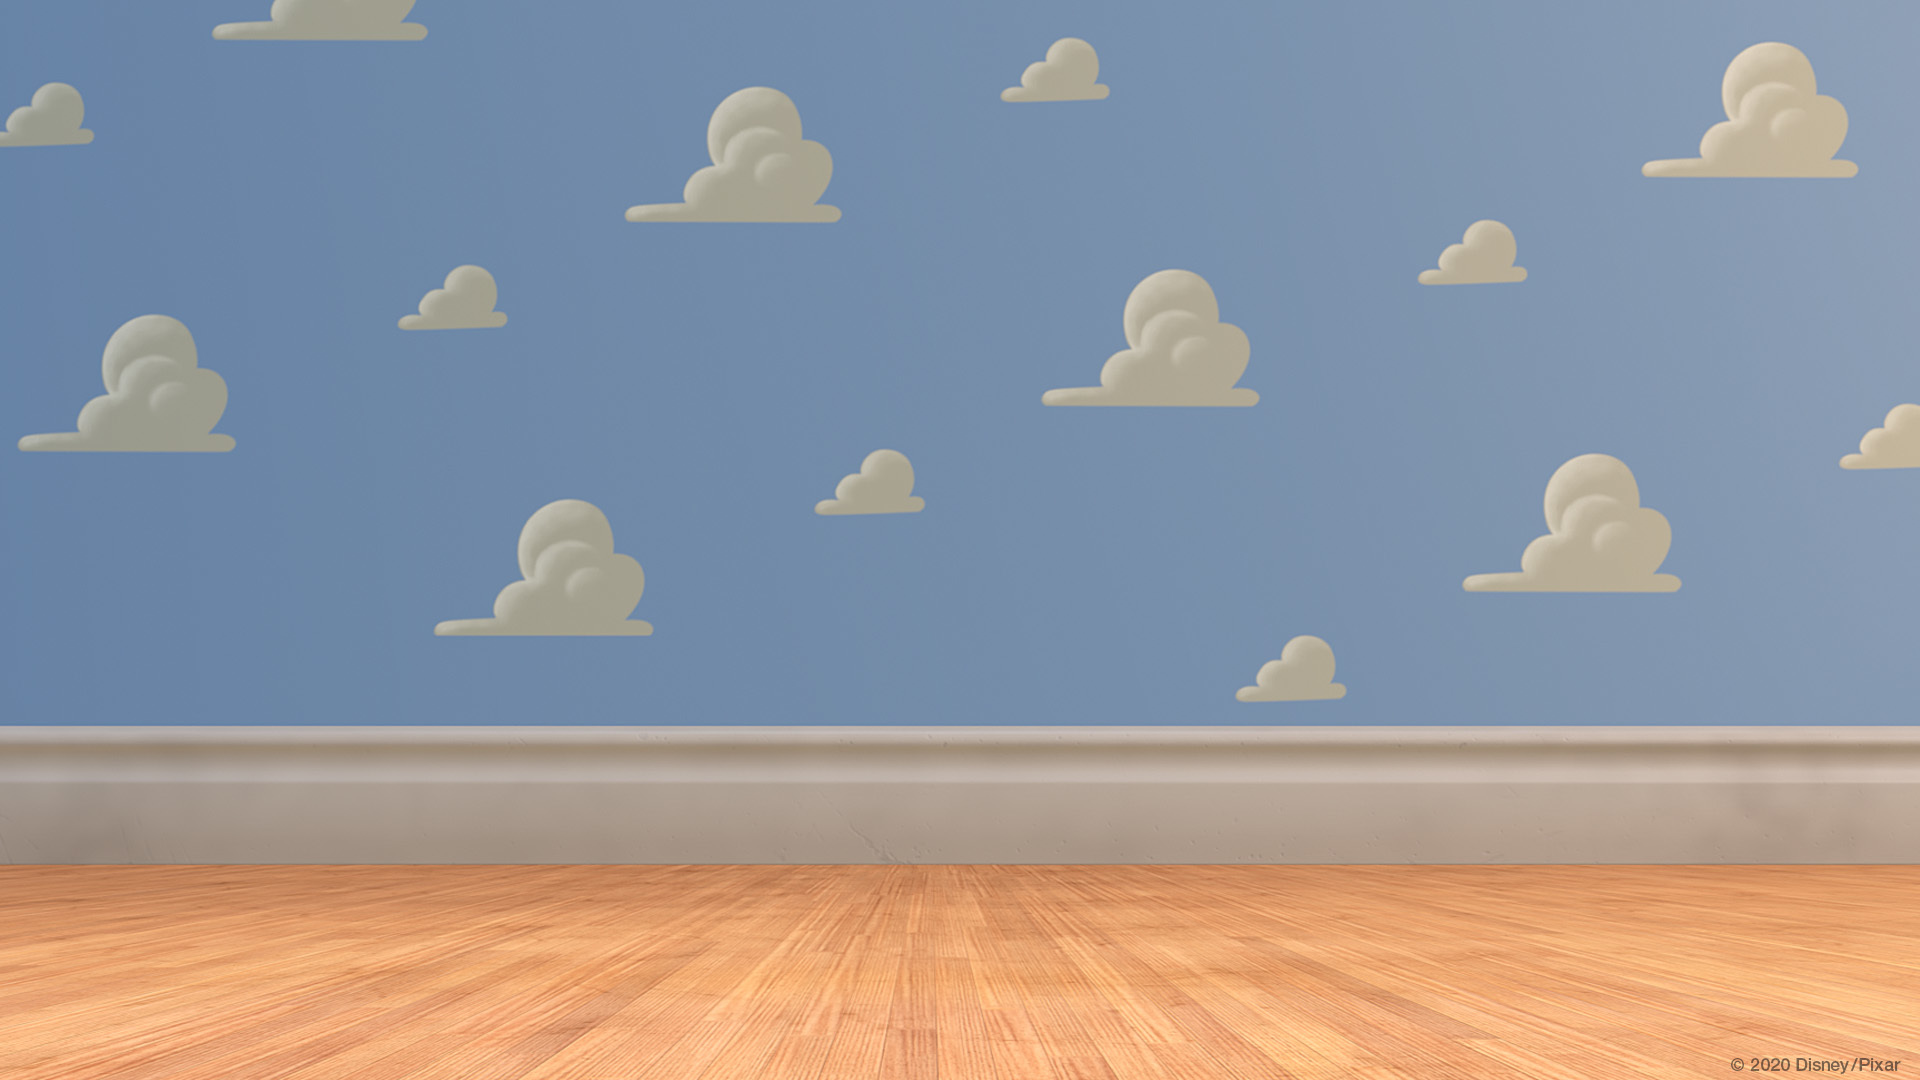 Toy Story Andy's room wallpaper. Virtual background to use on Zoom, Microsoft Teams, Skype, Google Meet, WebEx or any other compatible app.